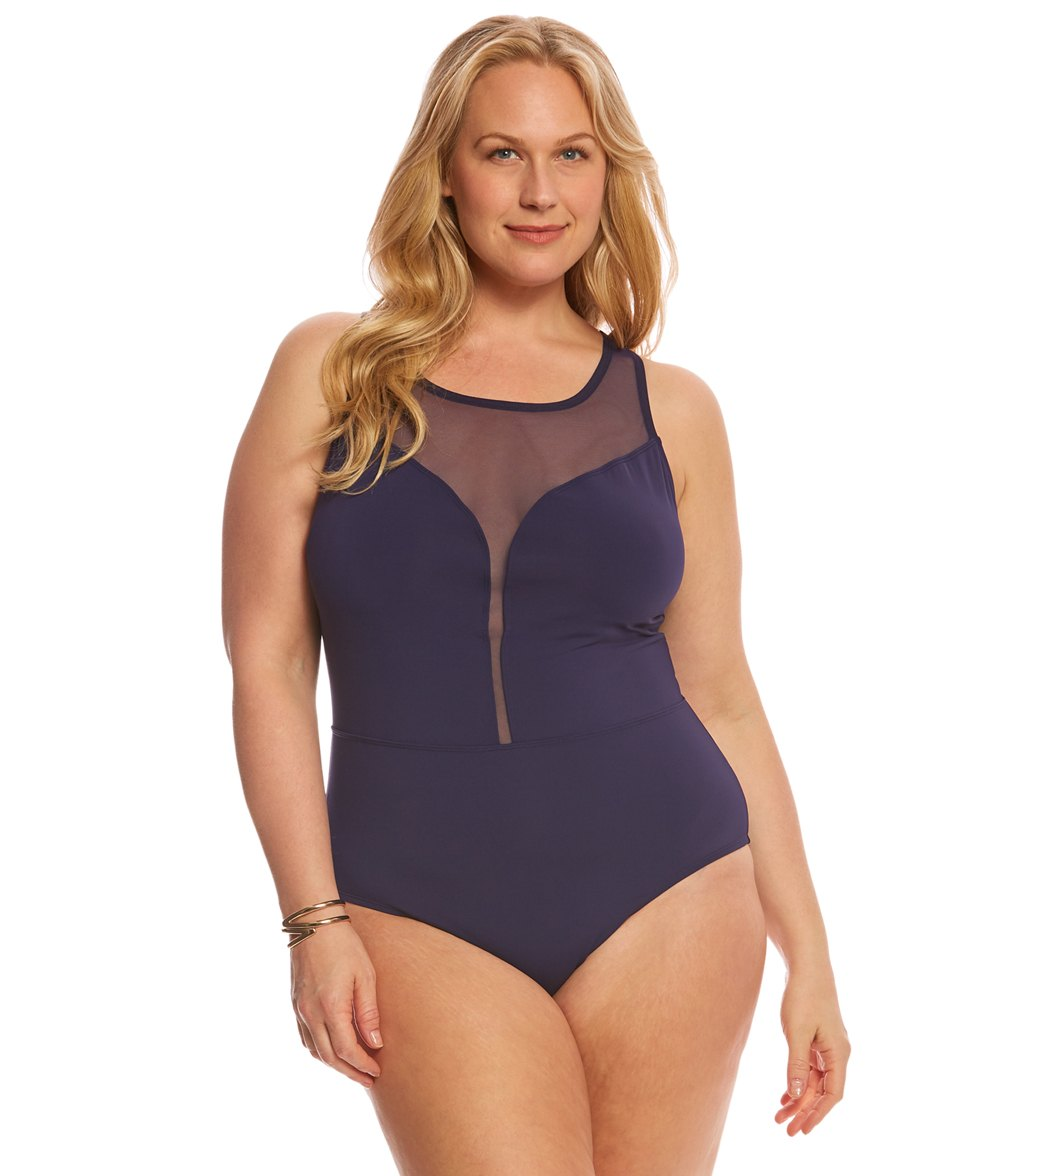 b353c63201b92 How to Choose Flattering Plus Size Swimwear